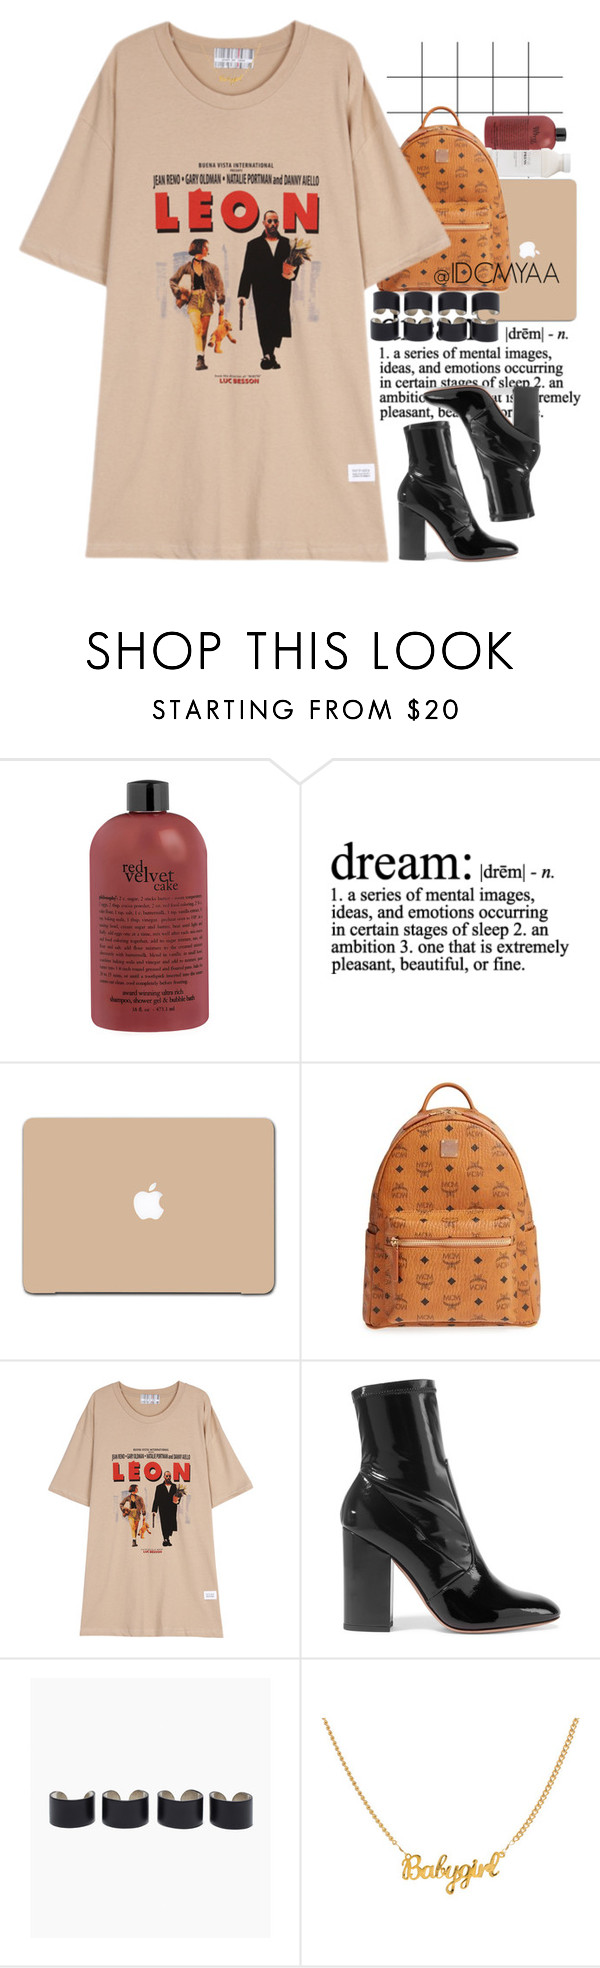 """8:13 PM 